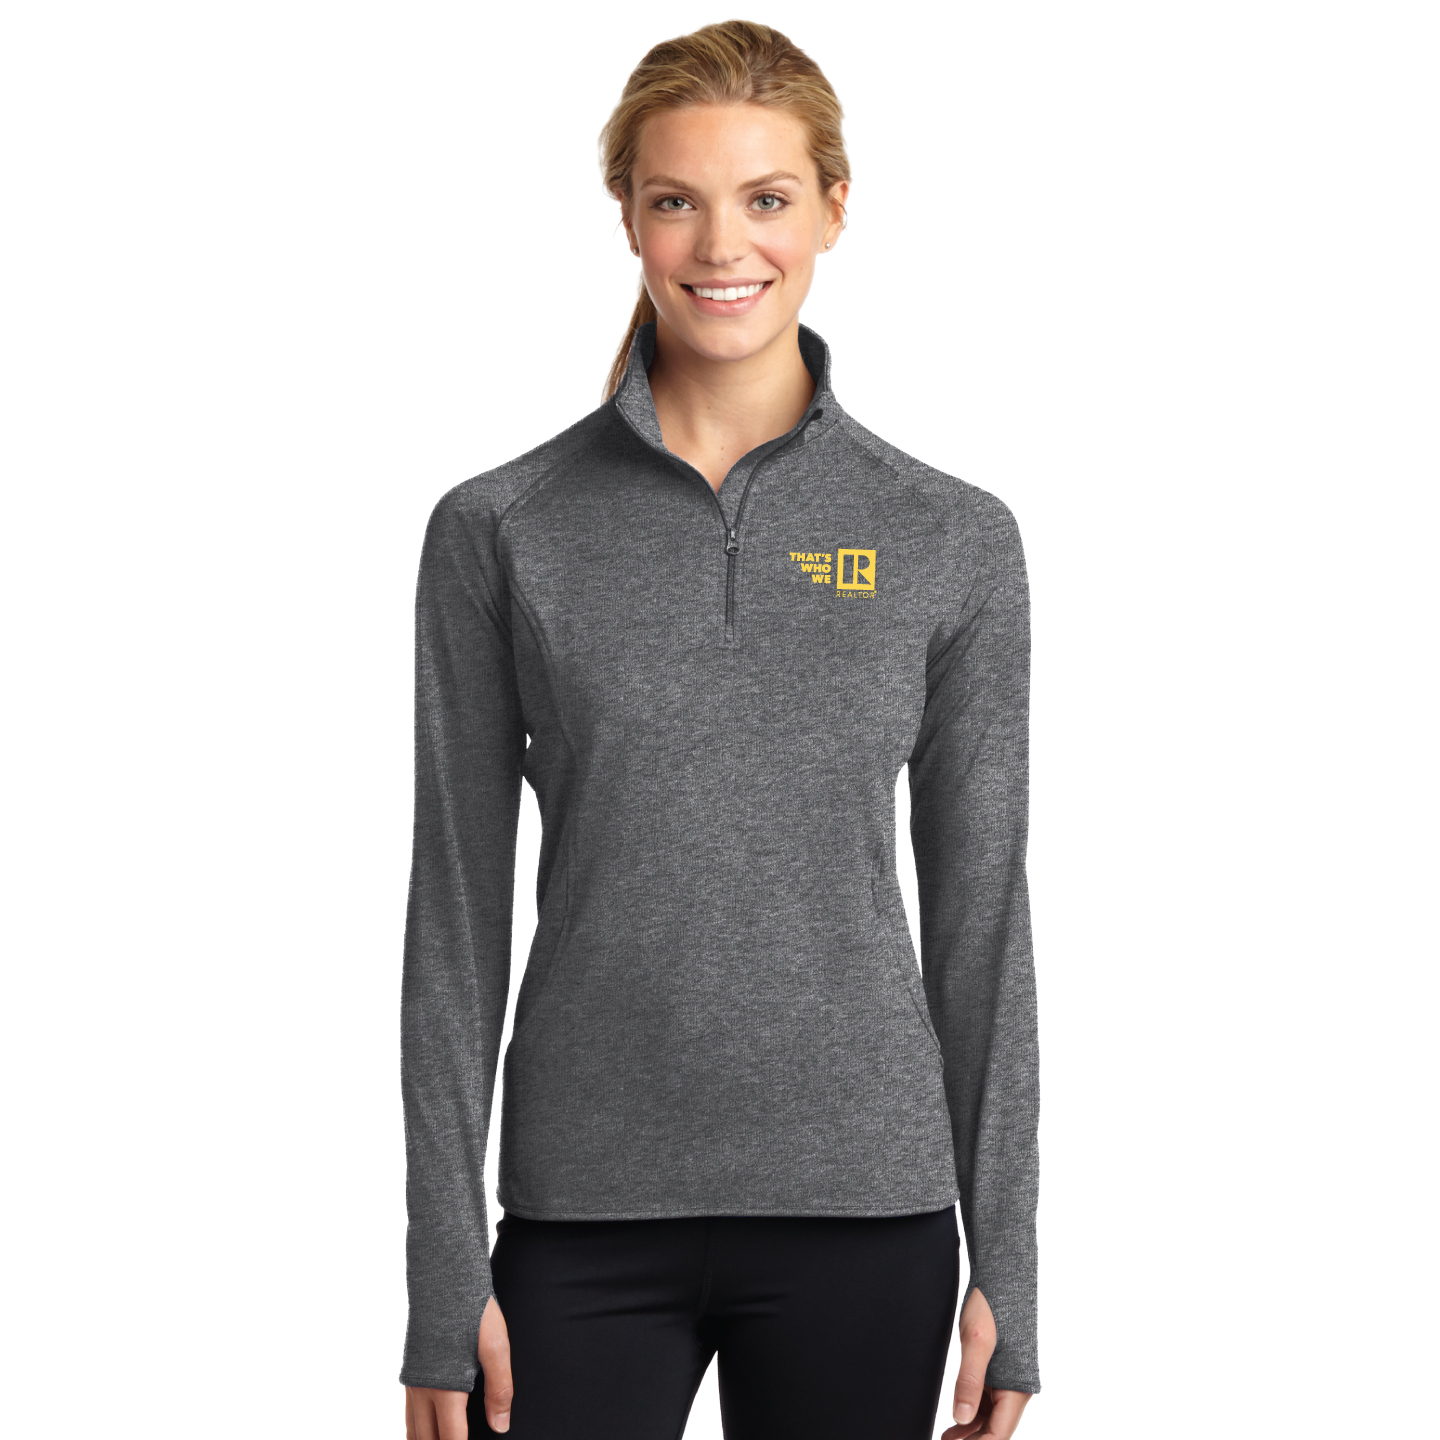 """Thats Who We R"" Ladies Sport Stretch 1/2 Zip Pullover TWWR,Thats,Whos,Are,Pullover,Fleece,Long Sleeve"